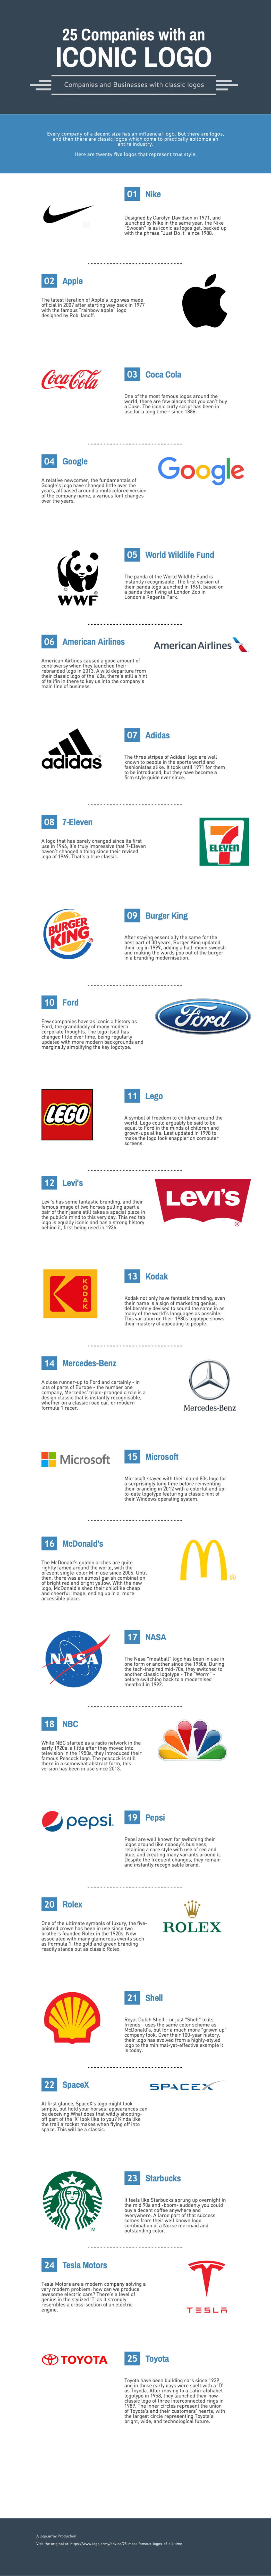 The 25 Most Famous Logos of All Time